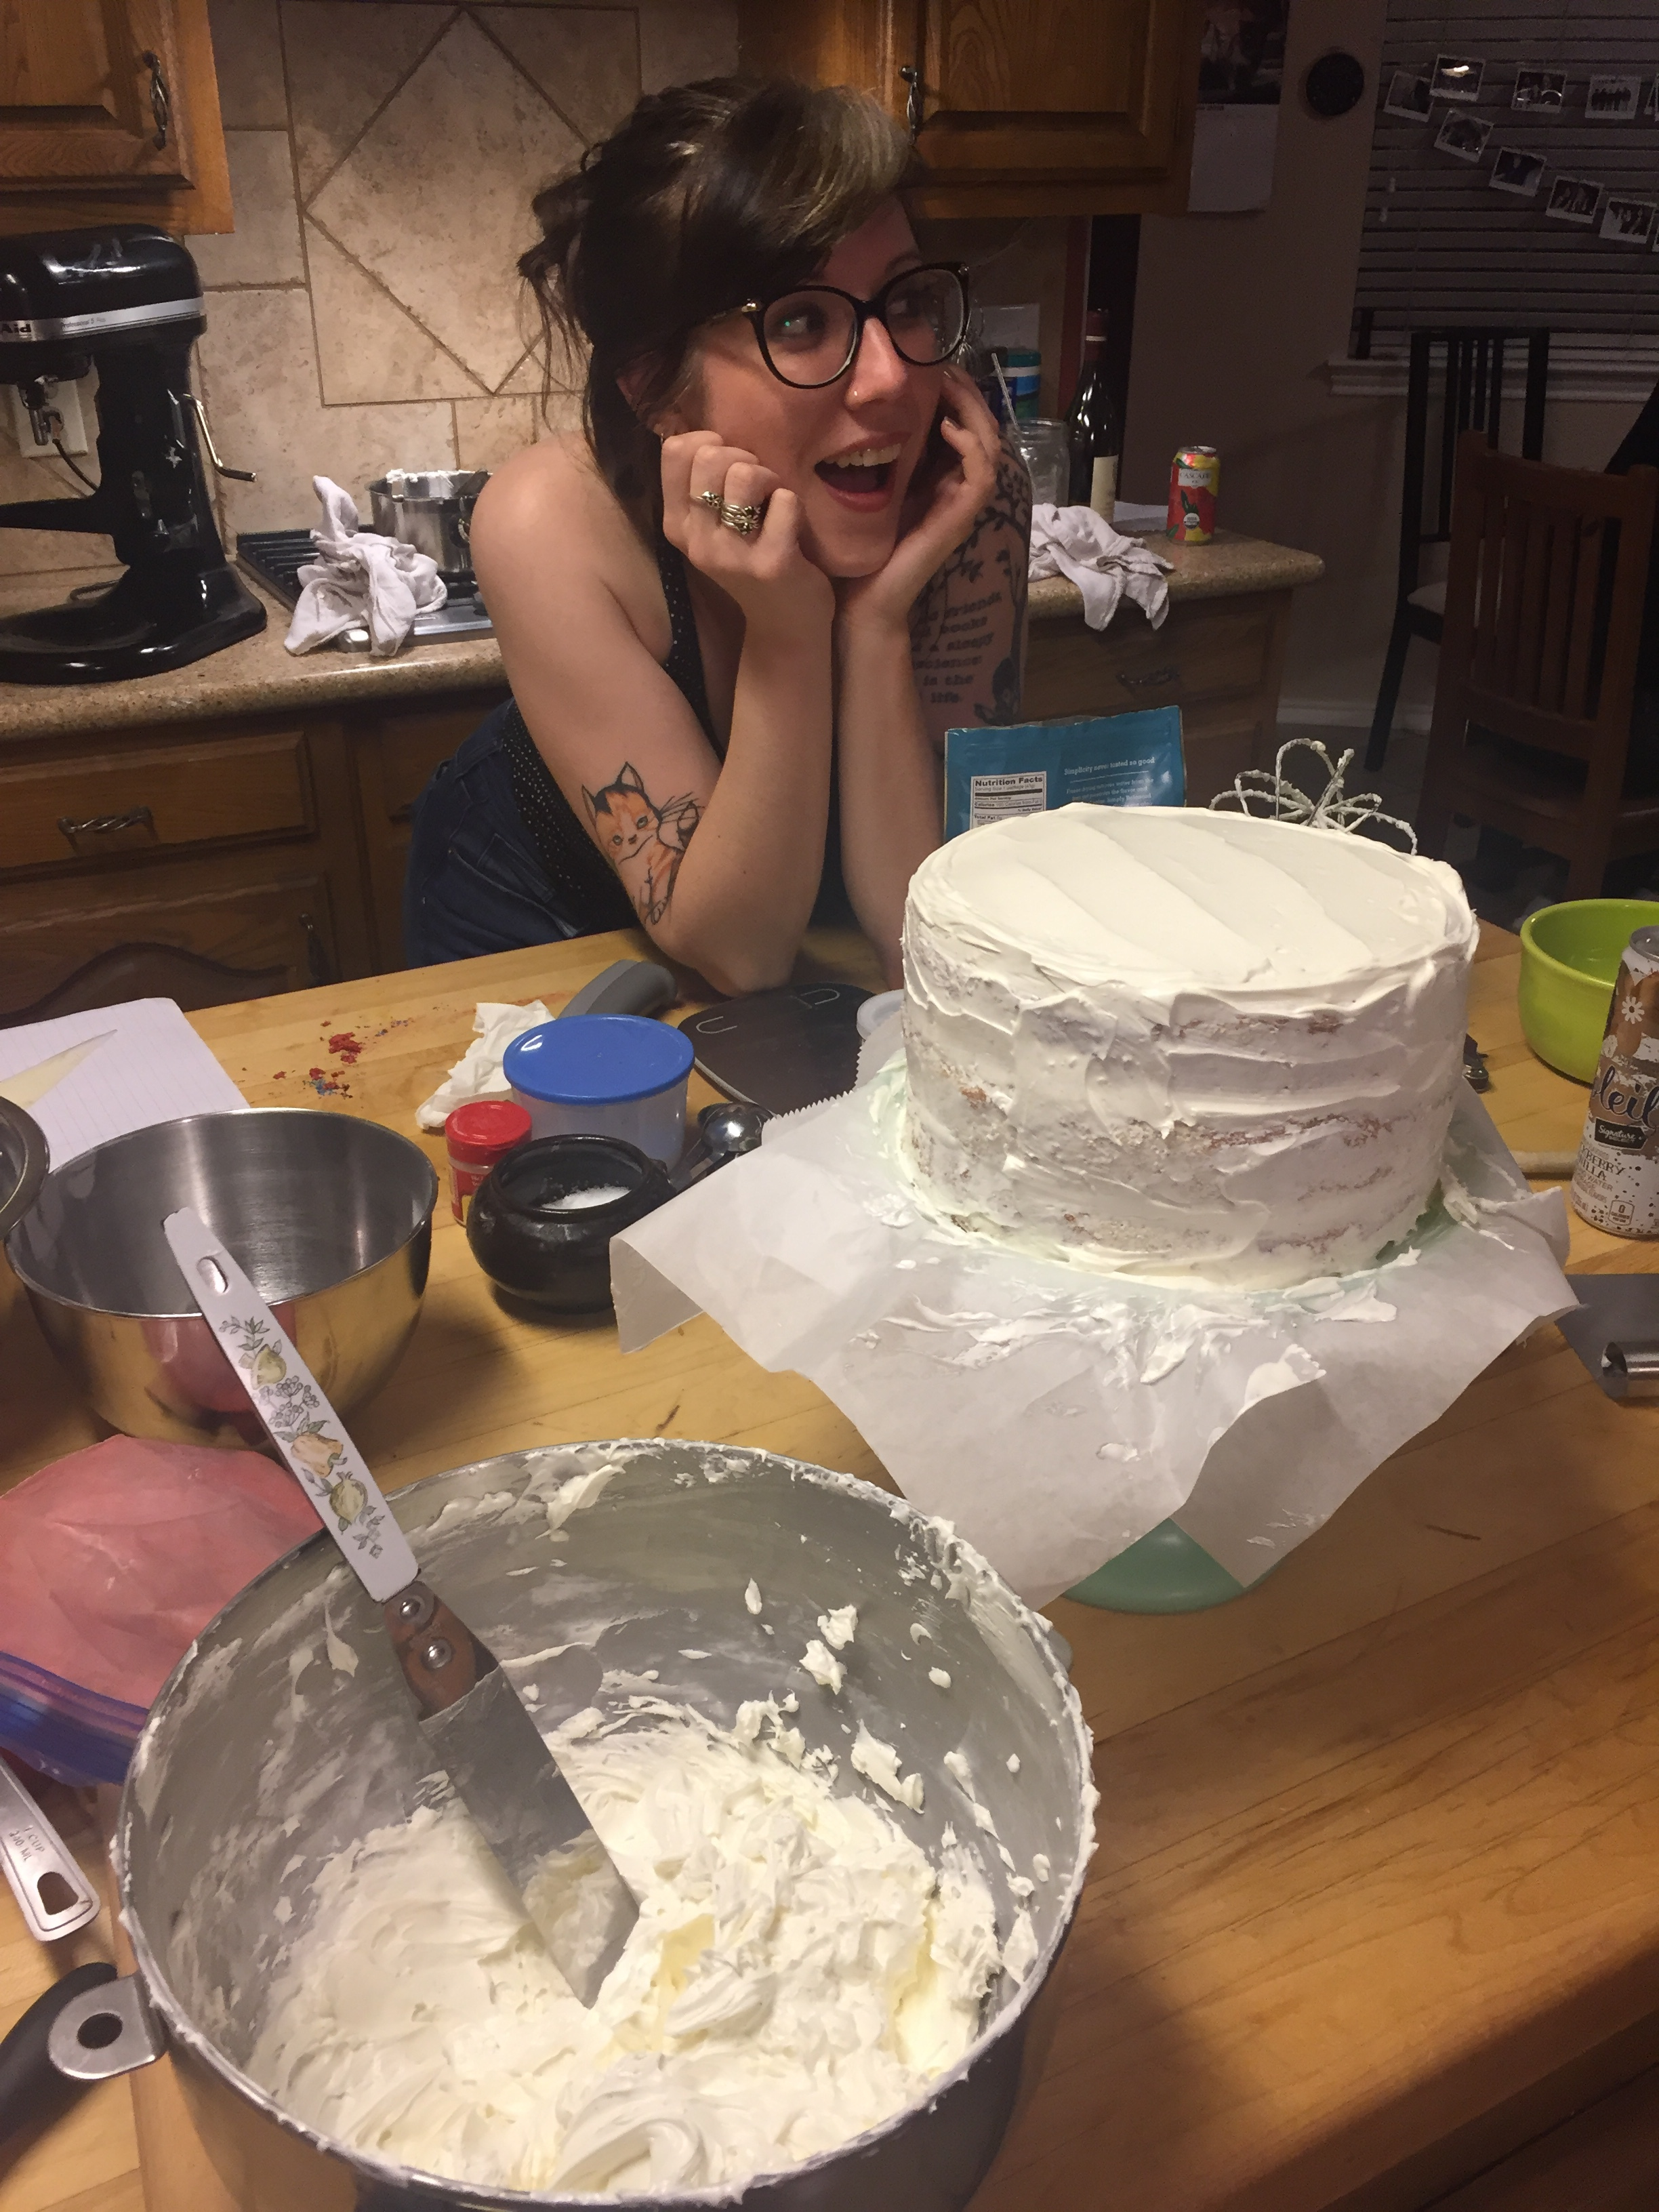 Step 2: Be amazed at the amount of butter you are about to slather on the cake.